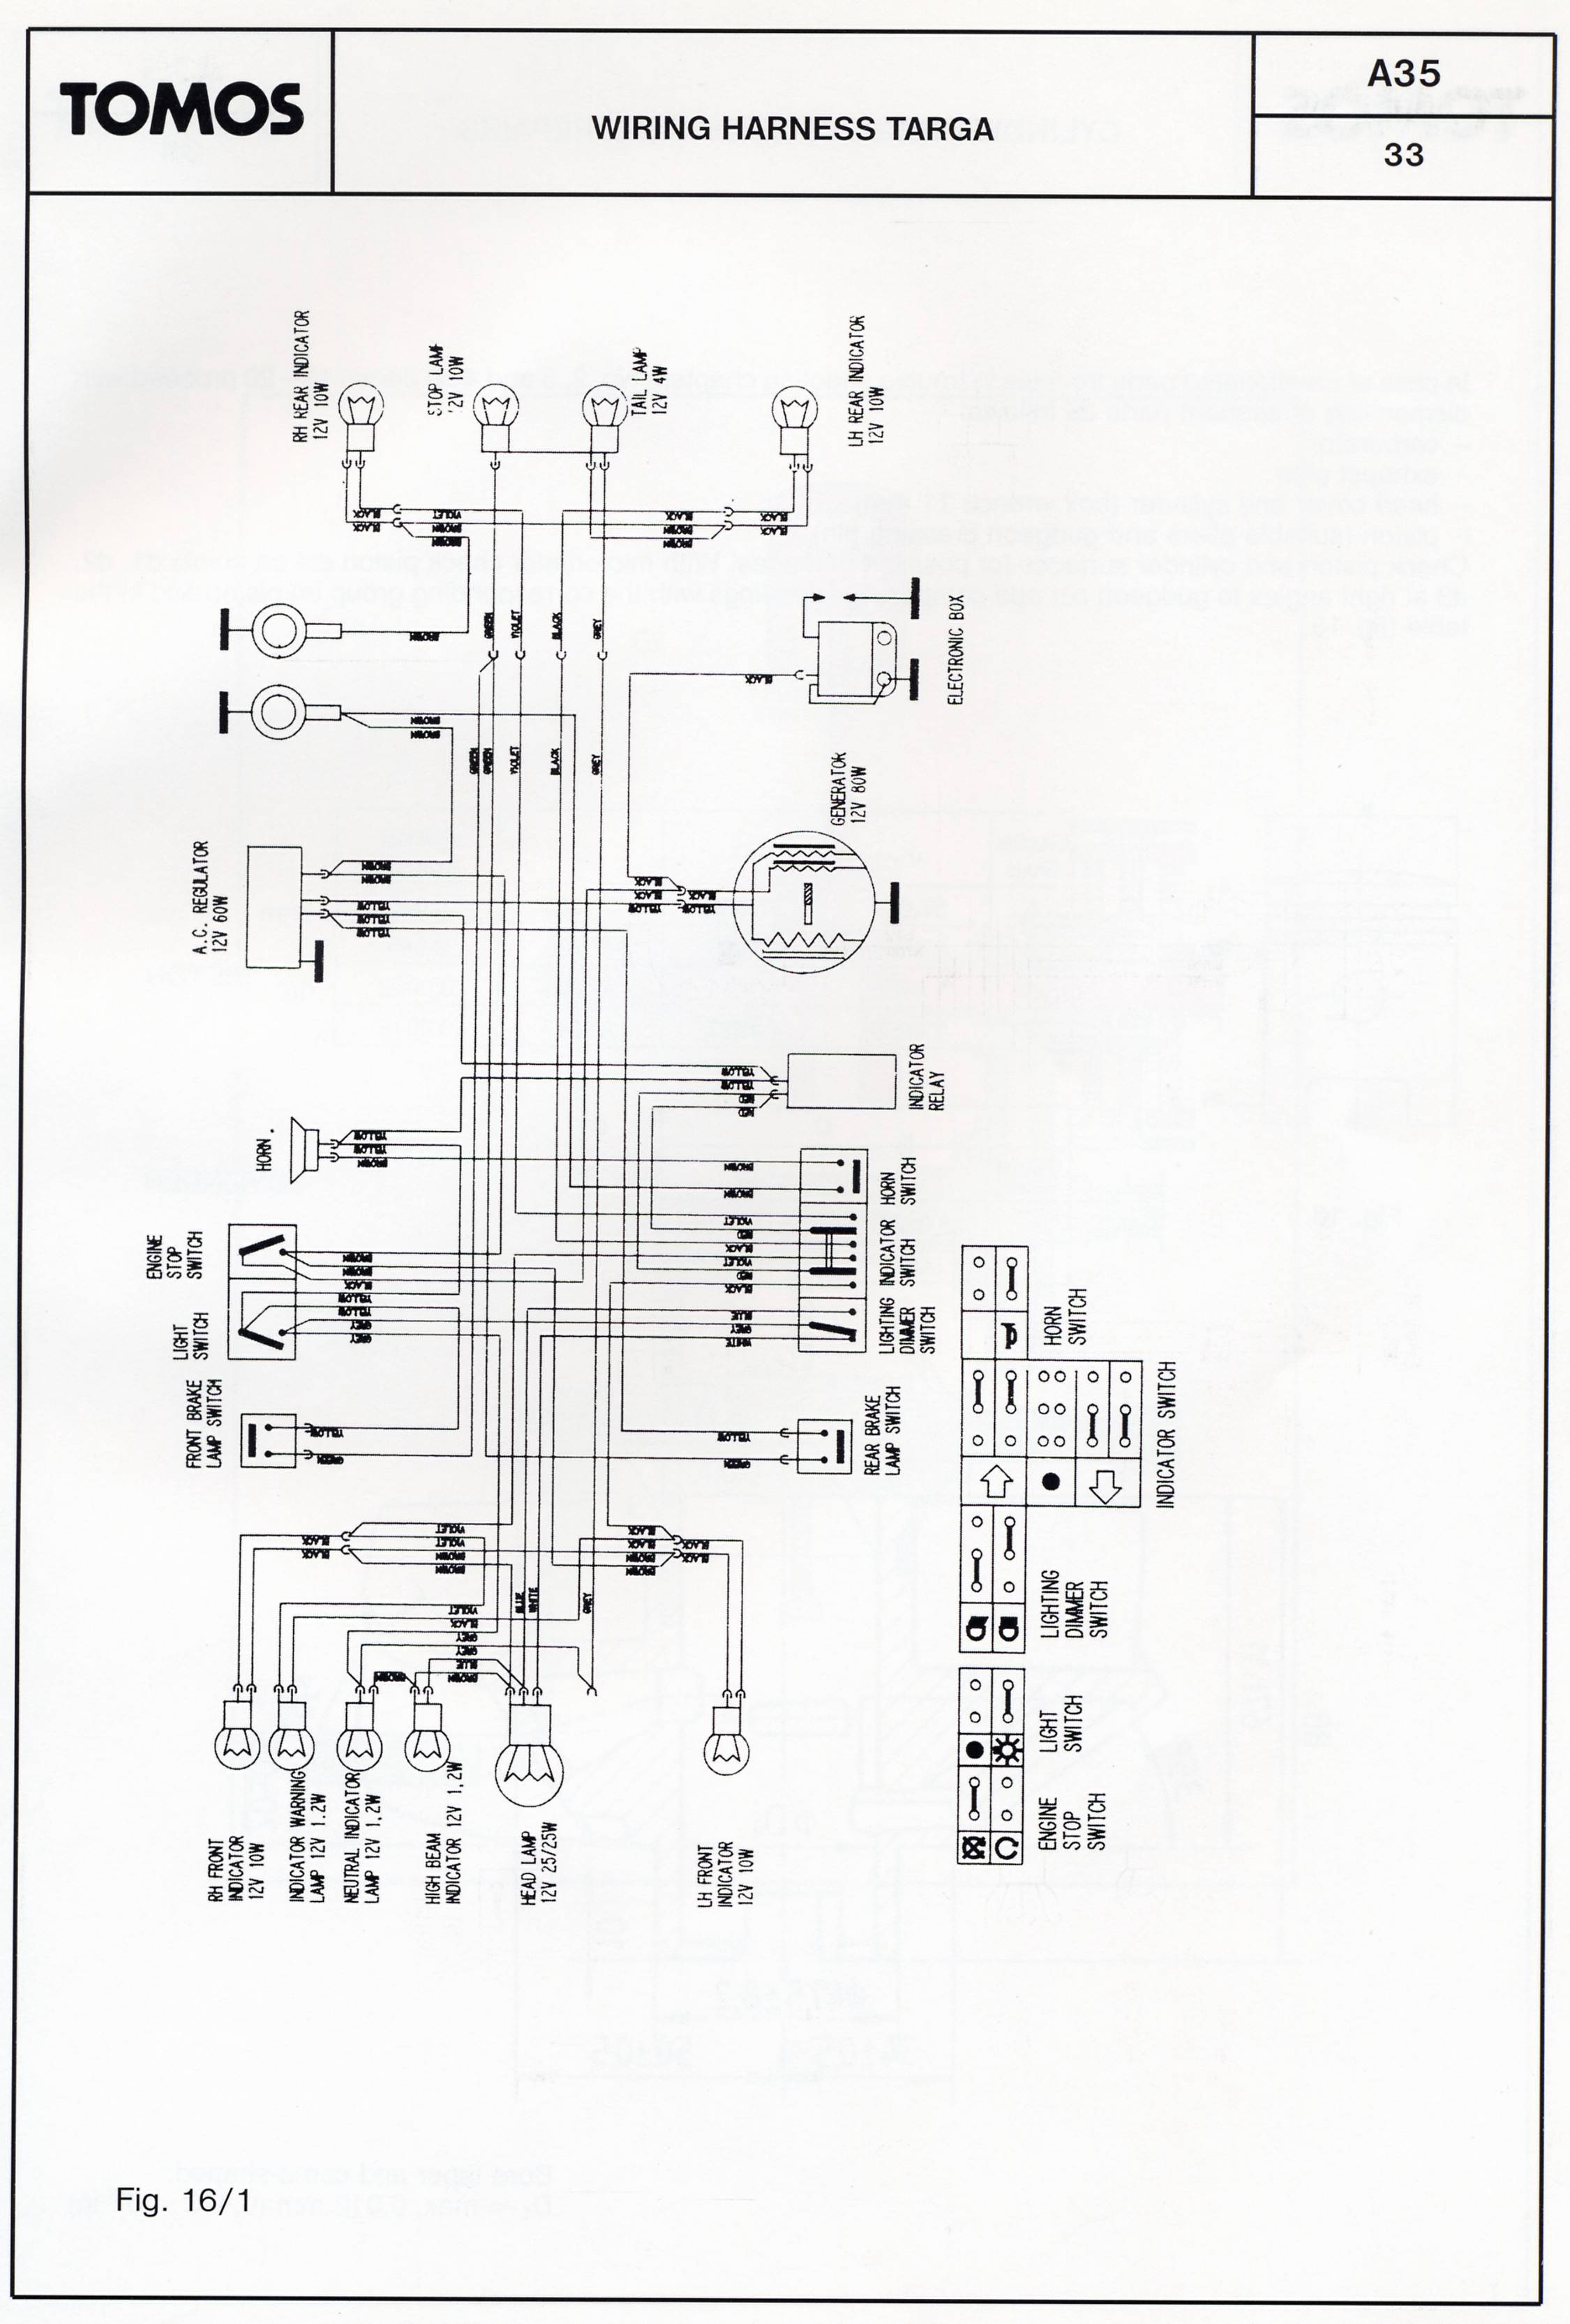 2004 Nissan Frontier Stereo Wiring Diagram further Rockford Fosgate Audio Diagrams in addition Manual Craftsman 10 Inch Band Saw Parts as well Nissan Navara D40 Headlight Wiring Diagram Wiring Diagrams as well 2002 Nissan Frontier Wiring Diagram. on nissan xterra rockford fosgate wiring diagram